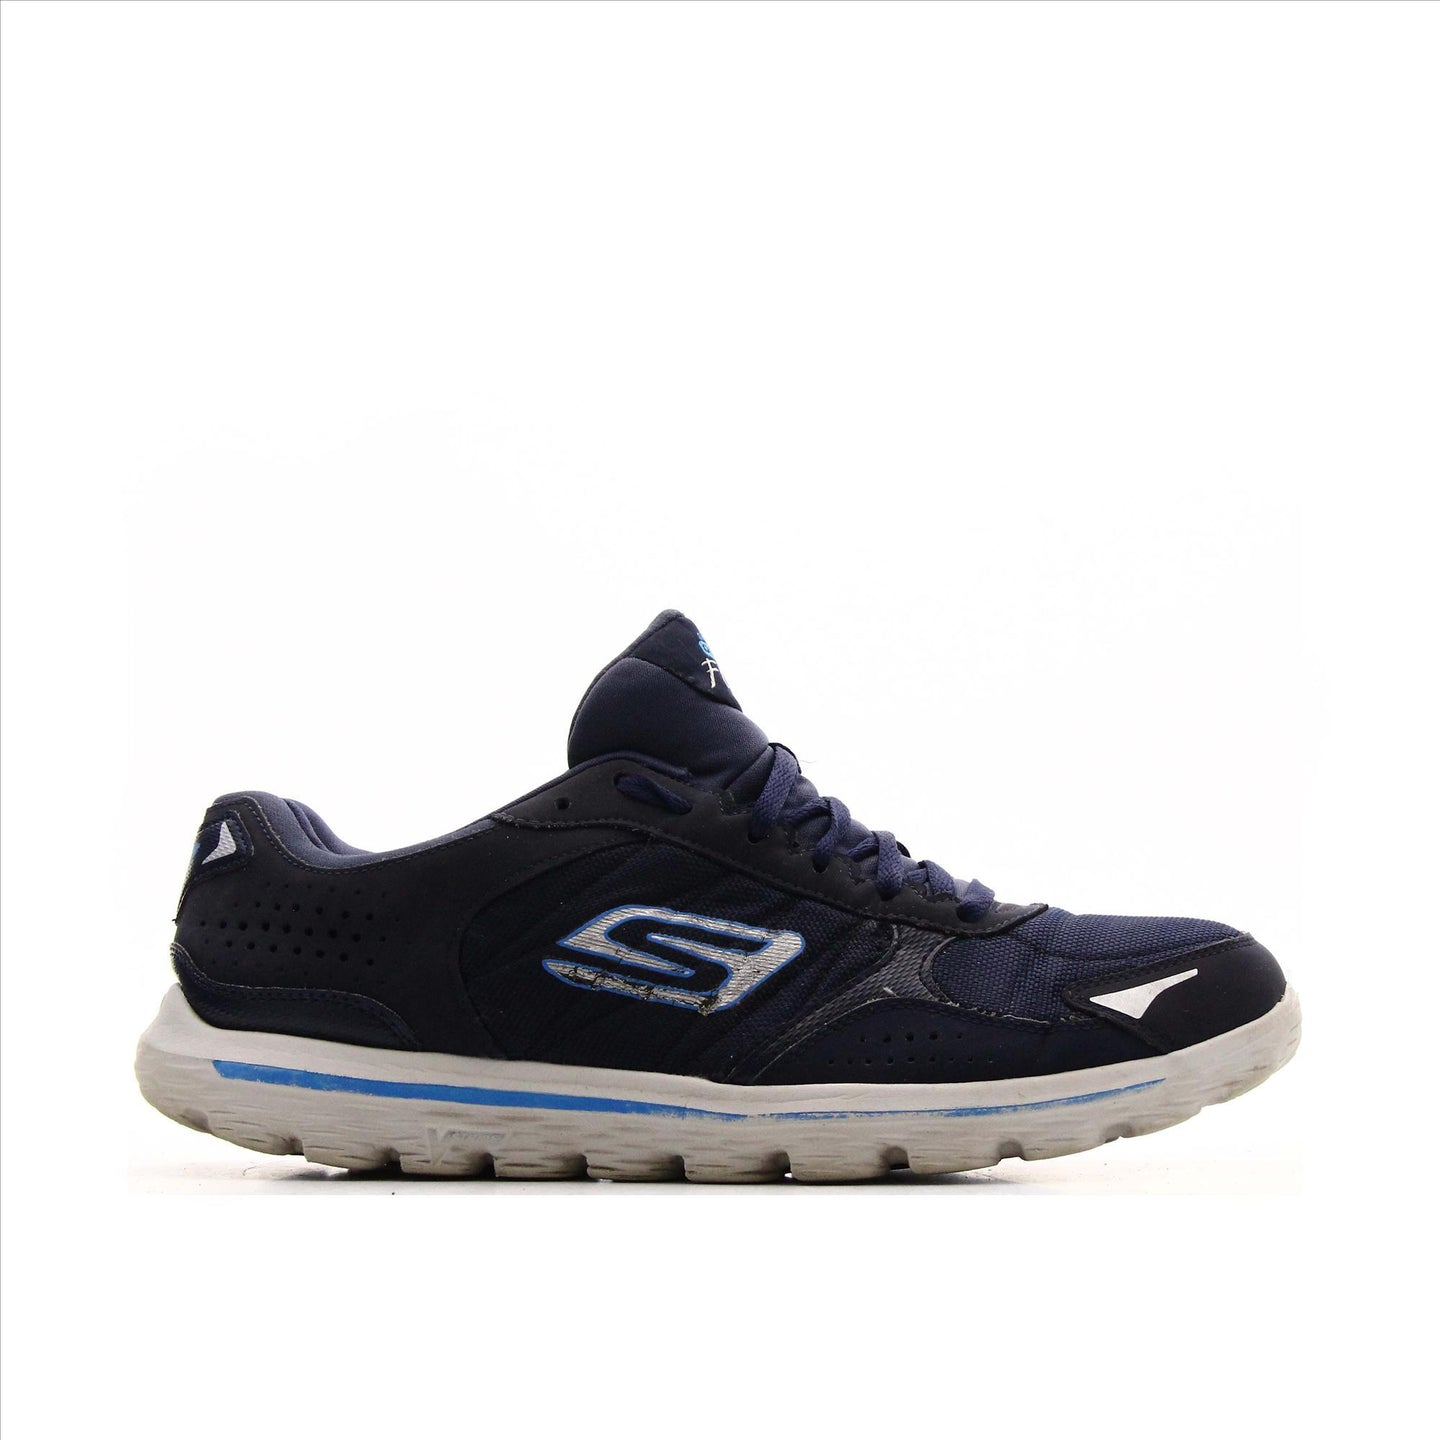 Skechers Go Walk Flash